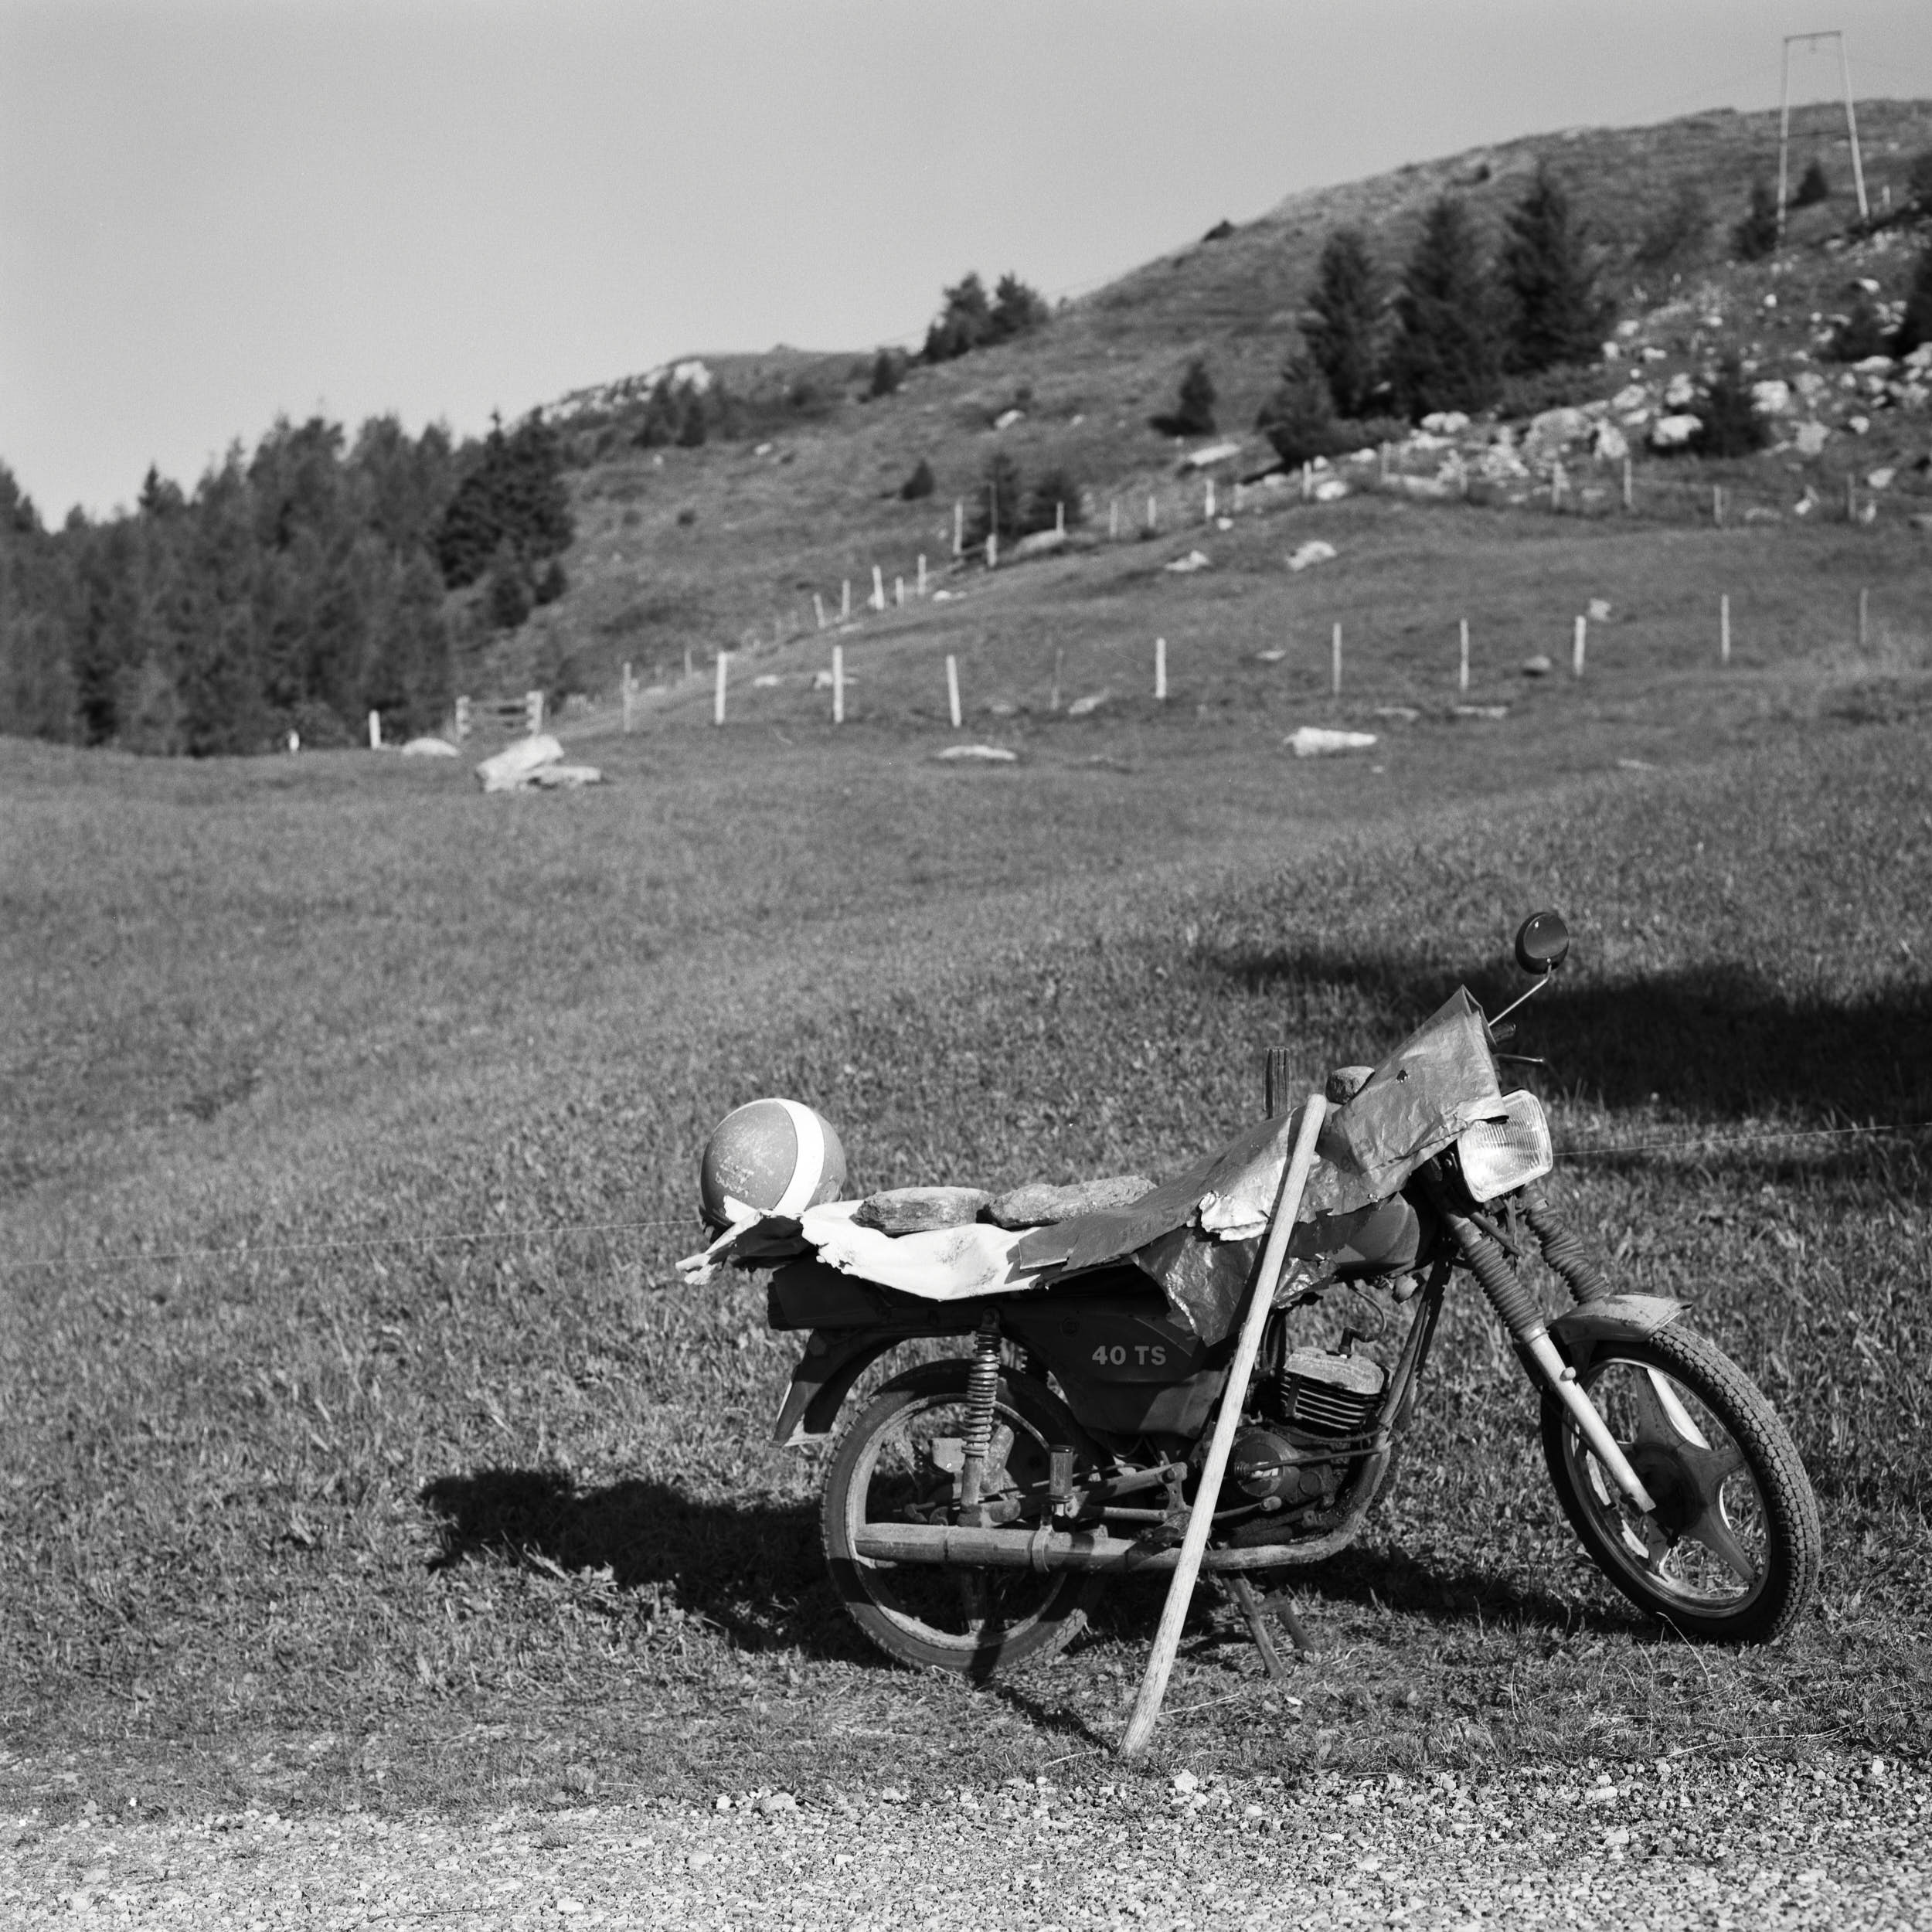 Black and white documentary photography: motorcycle parked on the side of a mountain road.